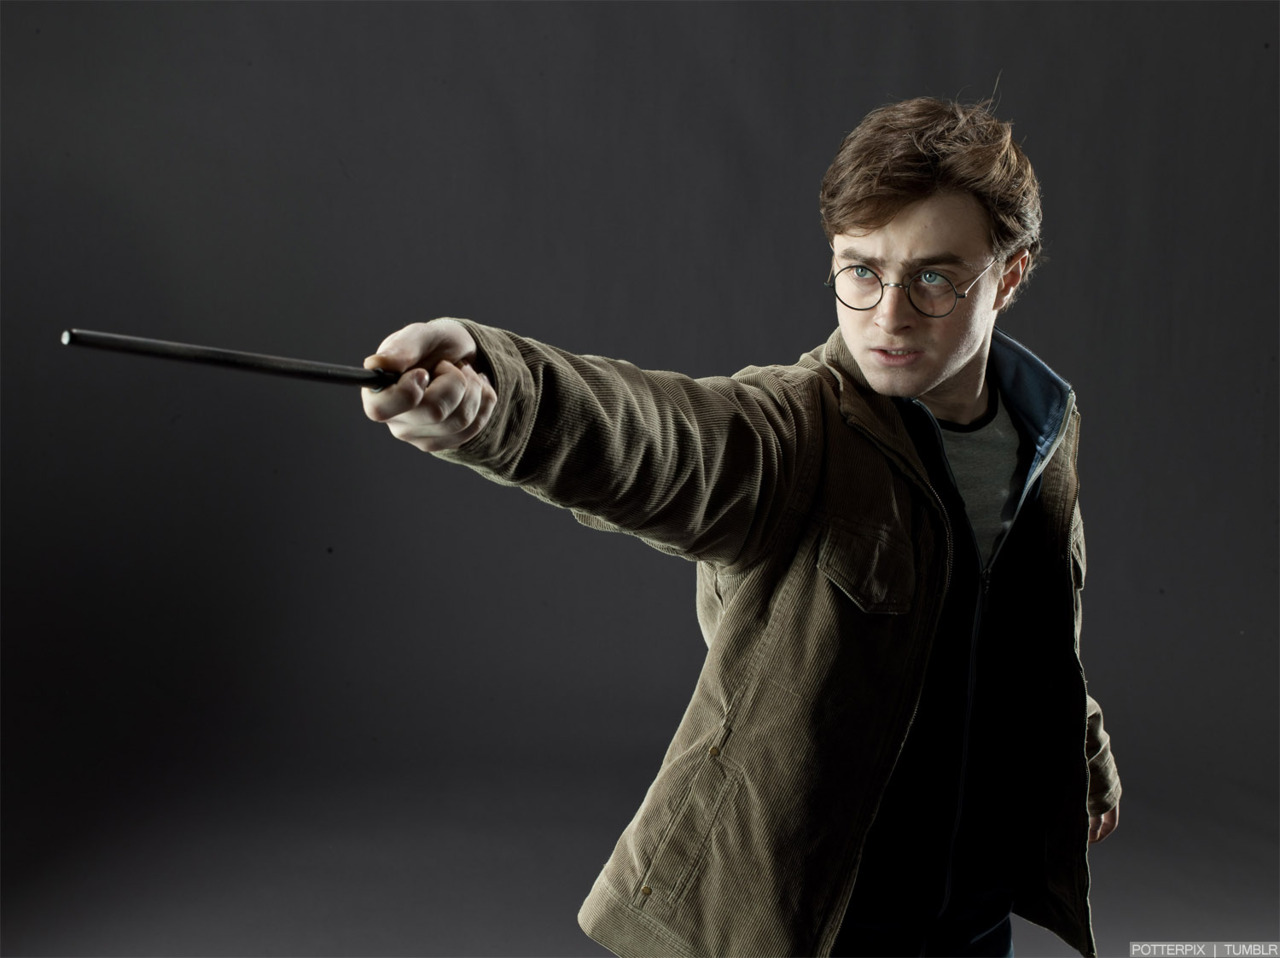 Daniel Radcliffe Harry Potter And The Deathly Hallows Part 2 Deathly Hallows Part 2...